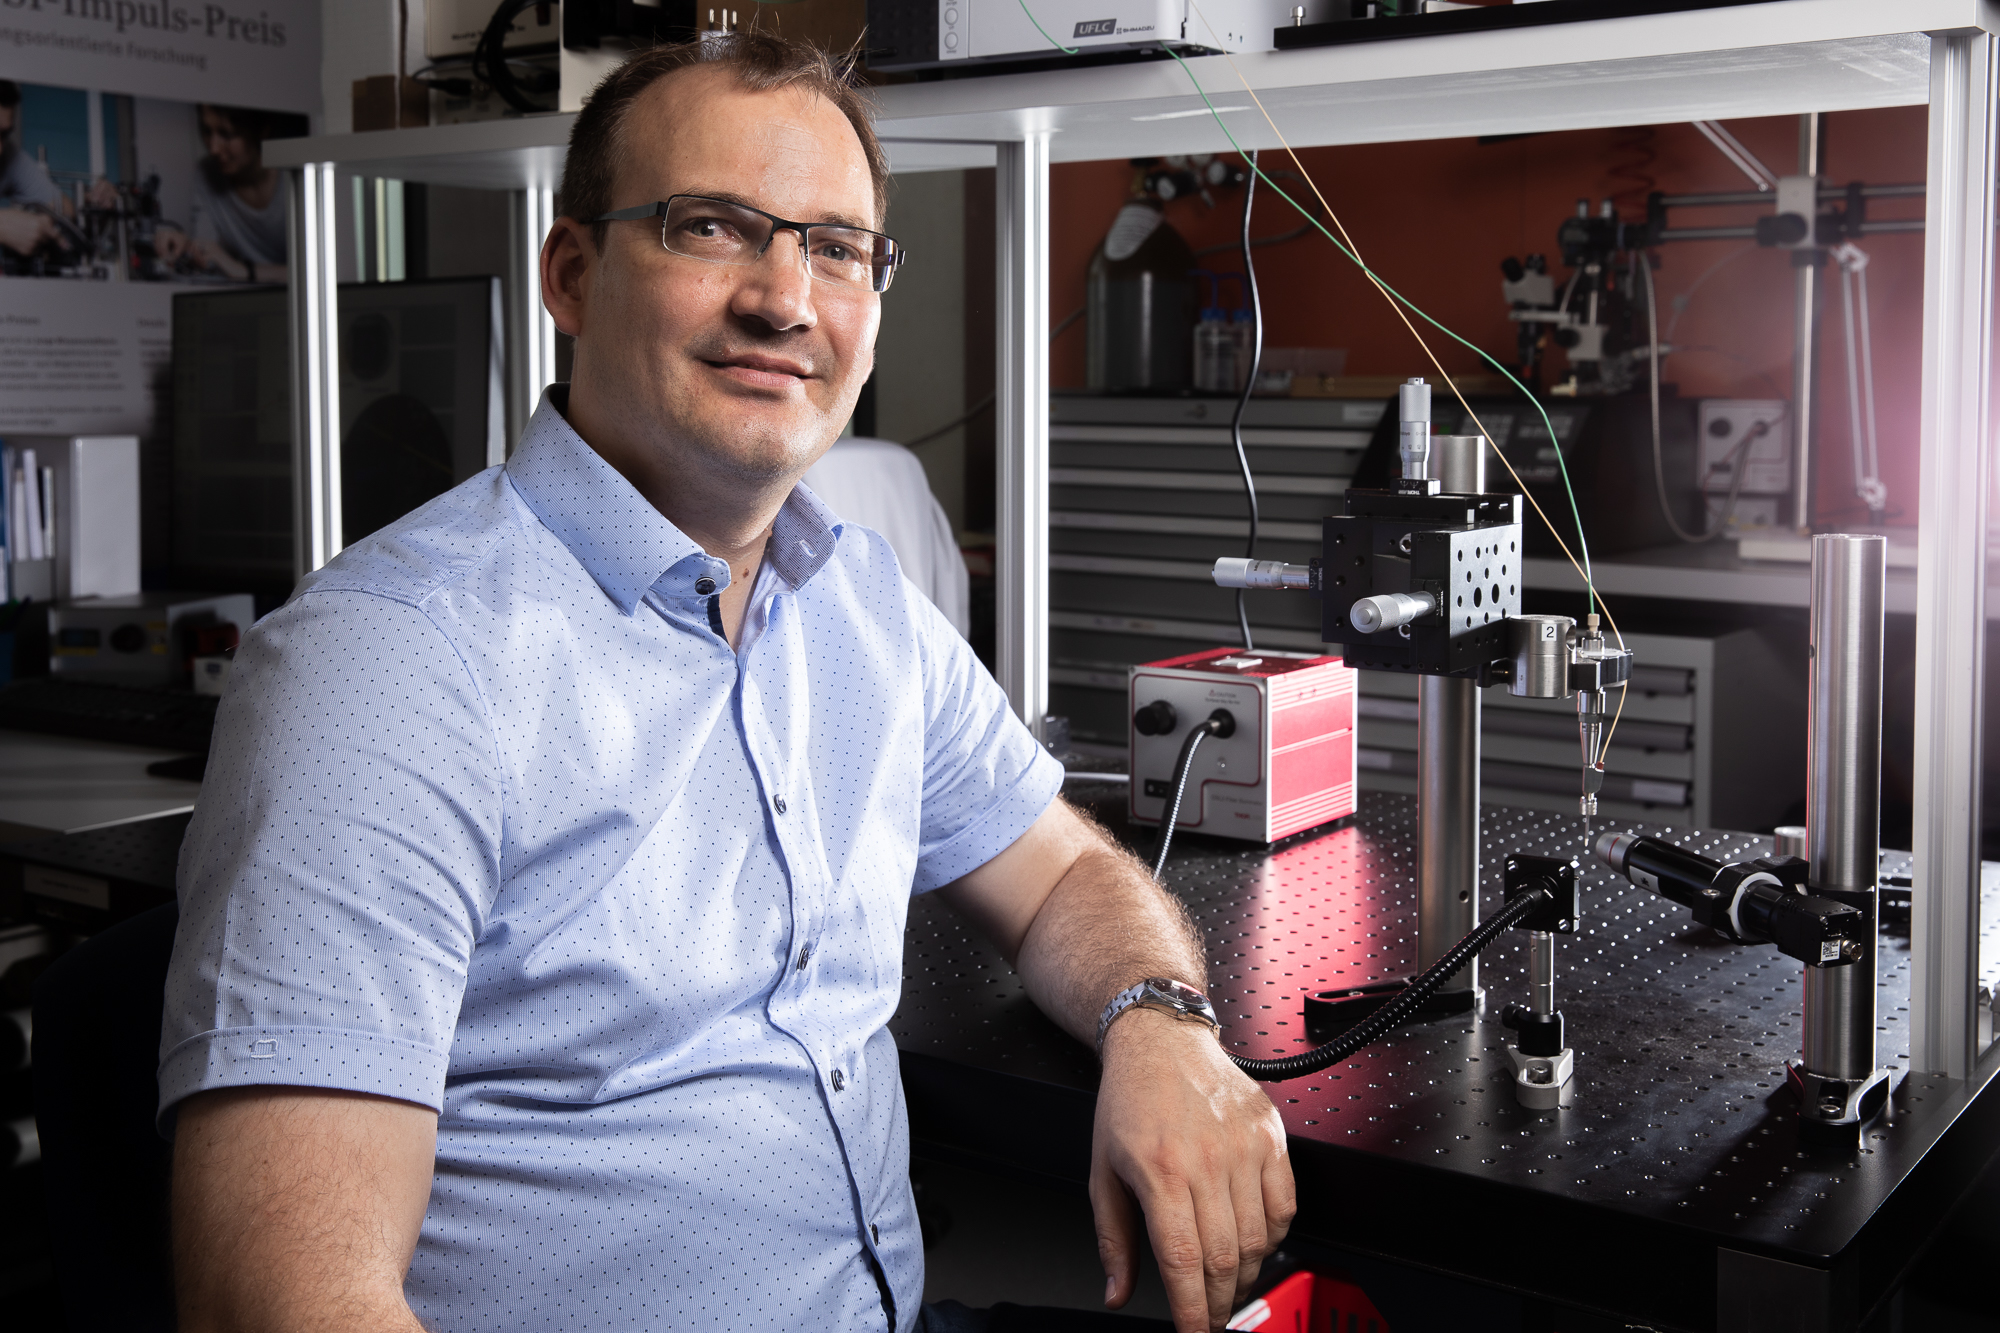 Jörg Standfuss at the injector with which protein crystals for the experiments at the Californian X-ray laser LCLS were tested. In the near future, this technology will also be available at PSI's X-ray laser SwissFEL, for scientists from all over the world. (Photo: Paul Scherrer Institute/Mahir Dzambegovic)